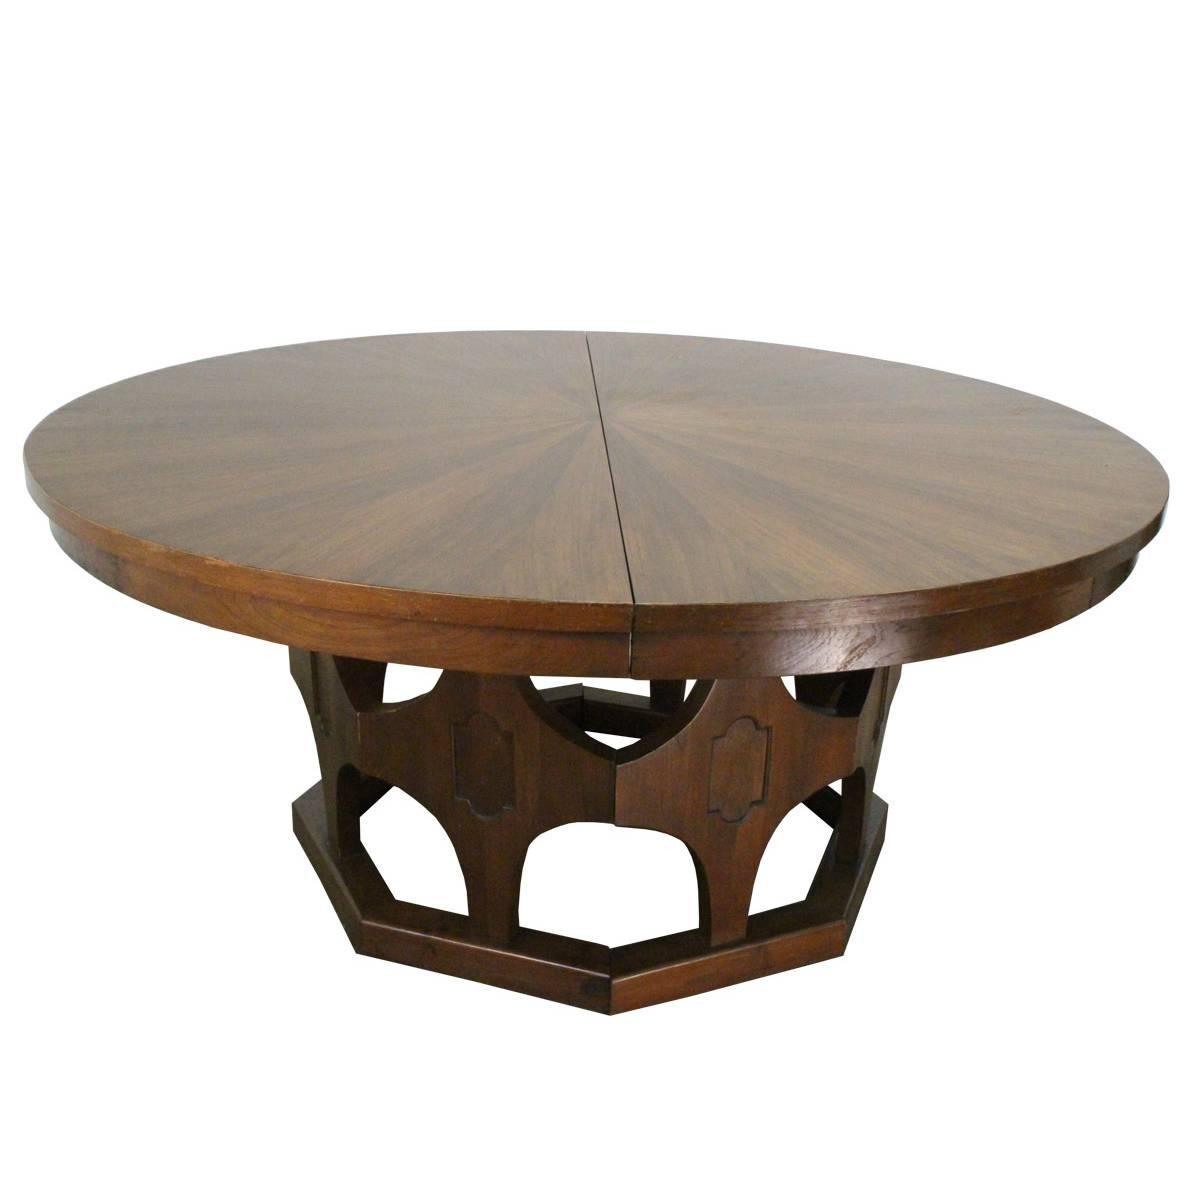 1960s Mid Century Expandable Round Walnut Dining Table At 1stdibs